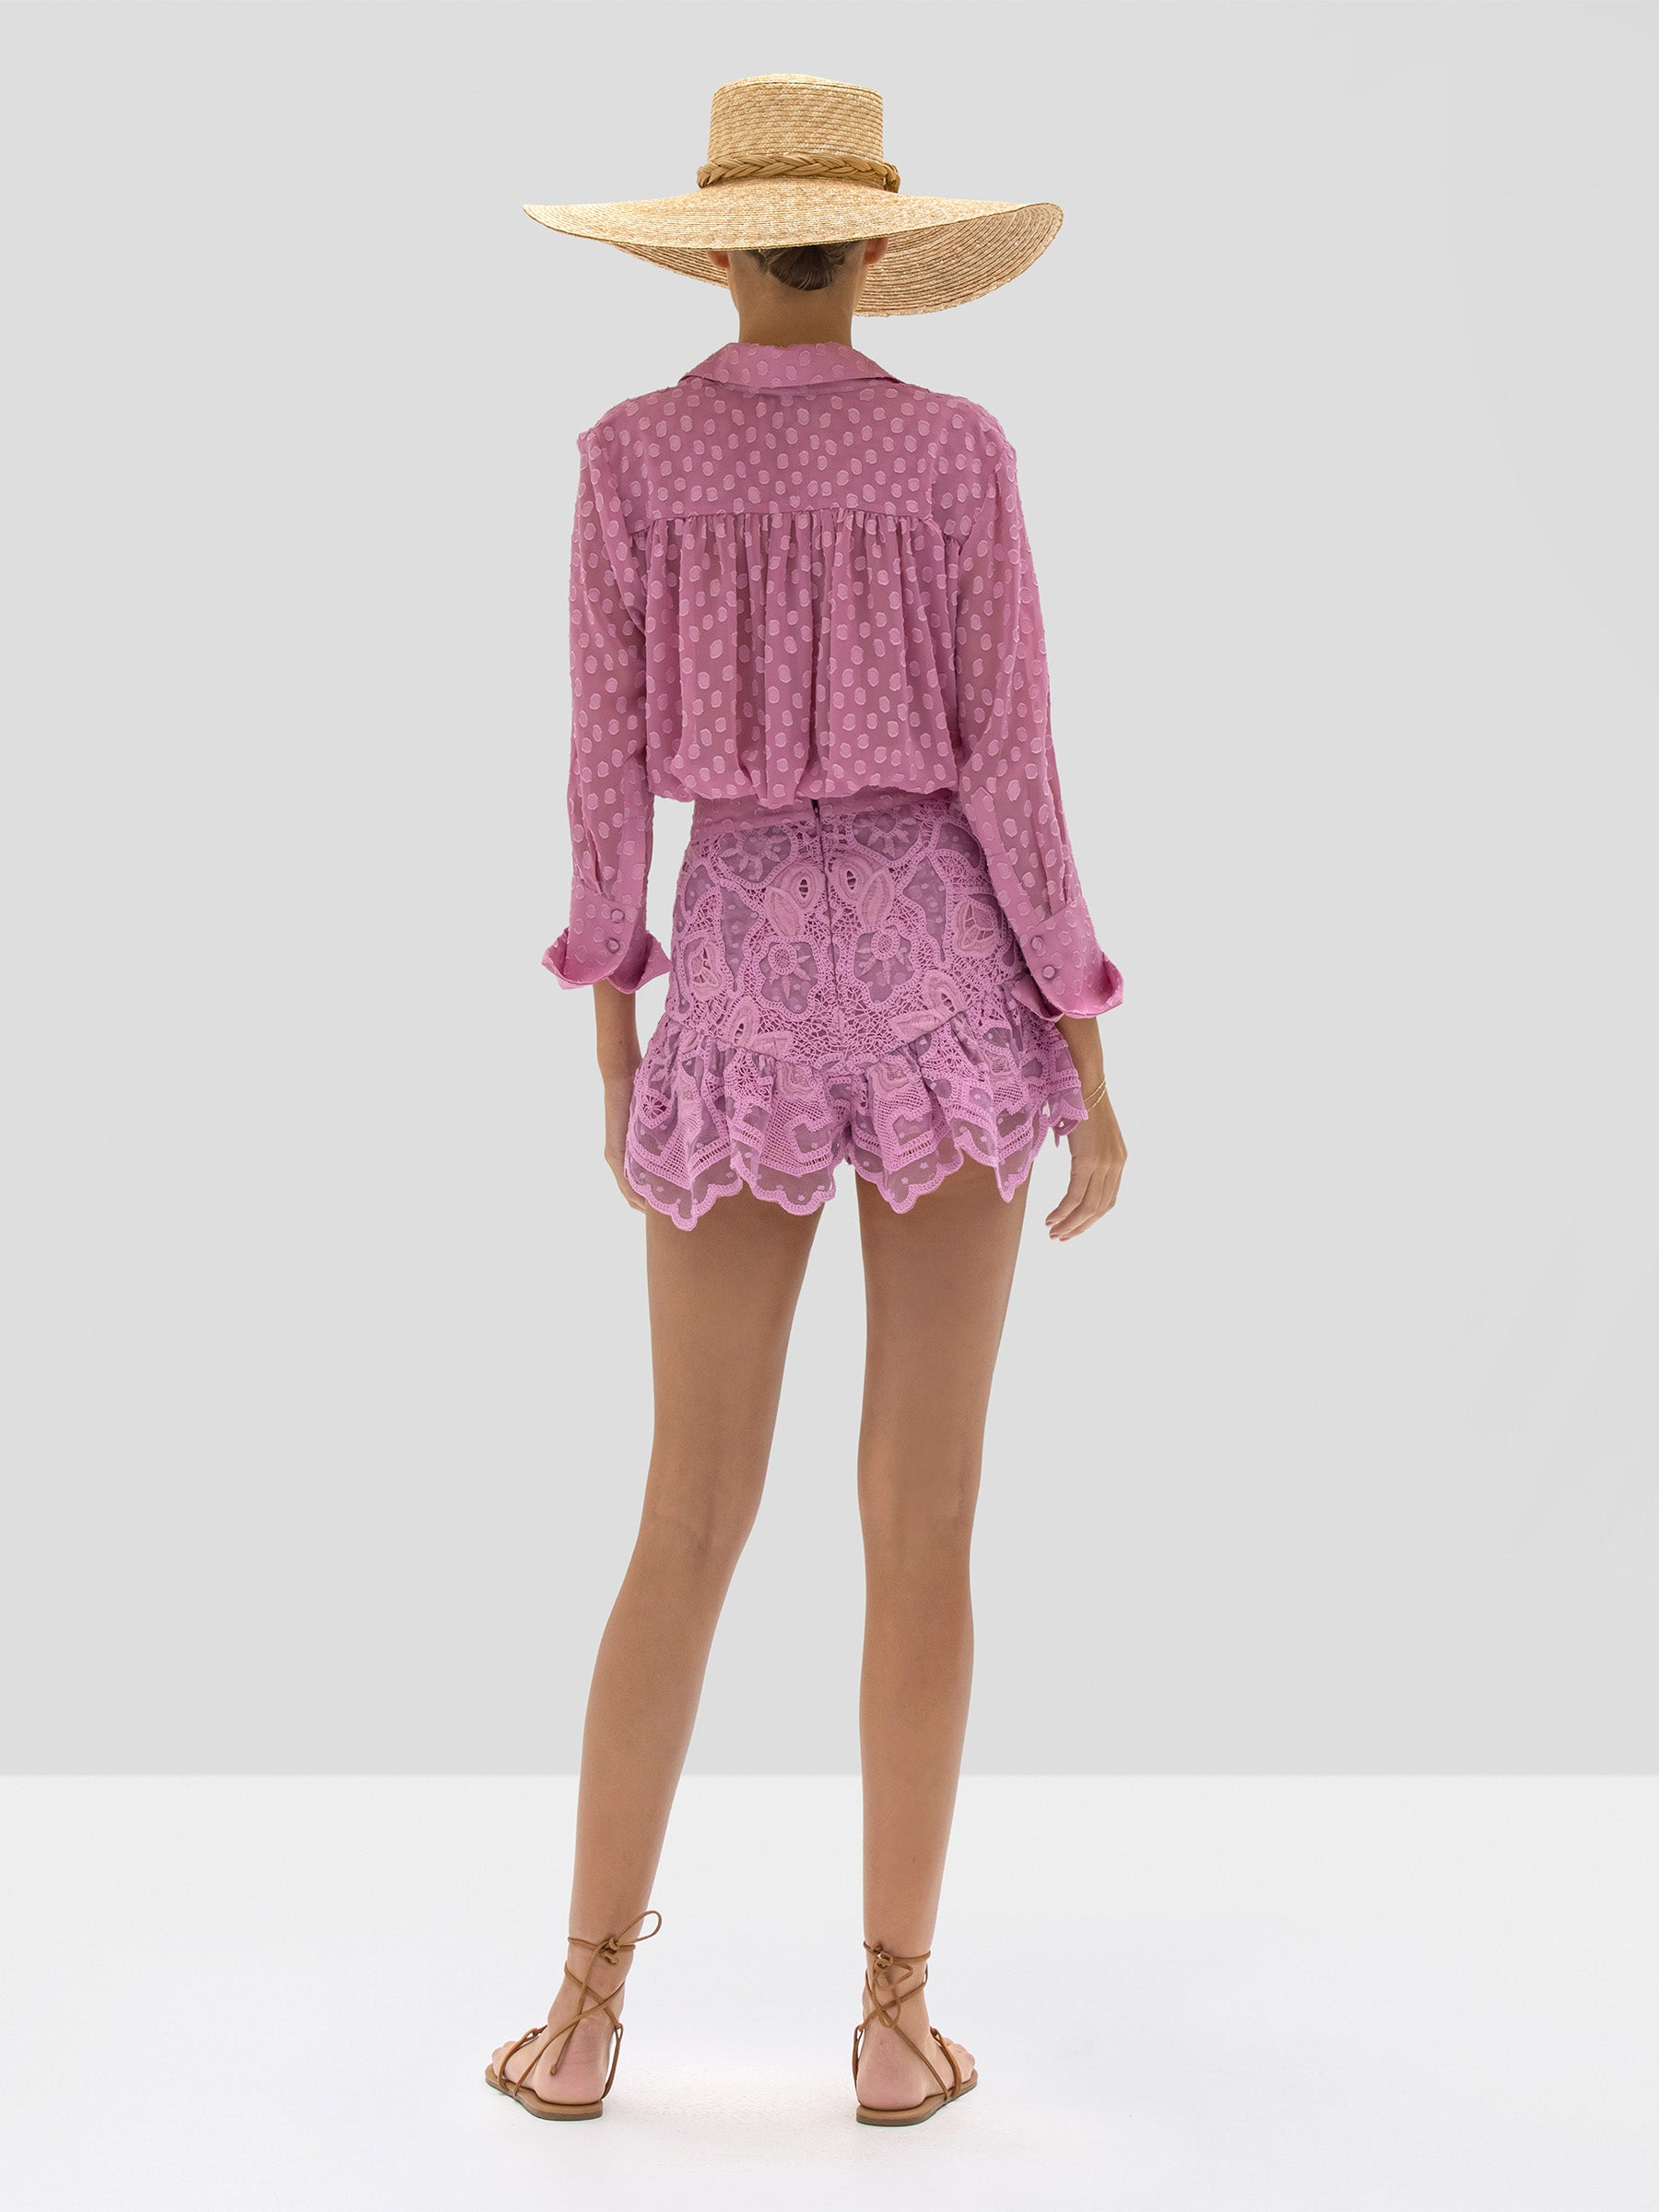 Alexis Kaja Top in Lilac Jacquard Dot and Inka Short in Lilac Macrame from Spring Summer 2020 - Rear View